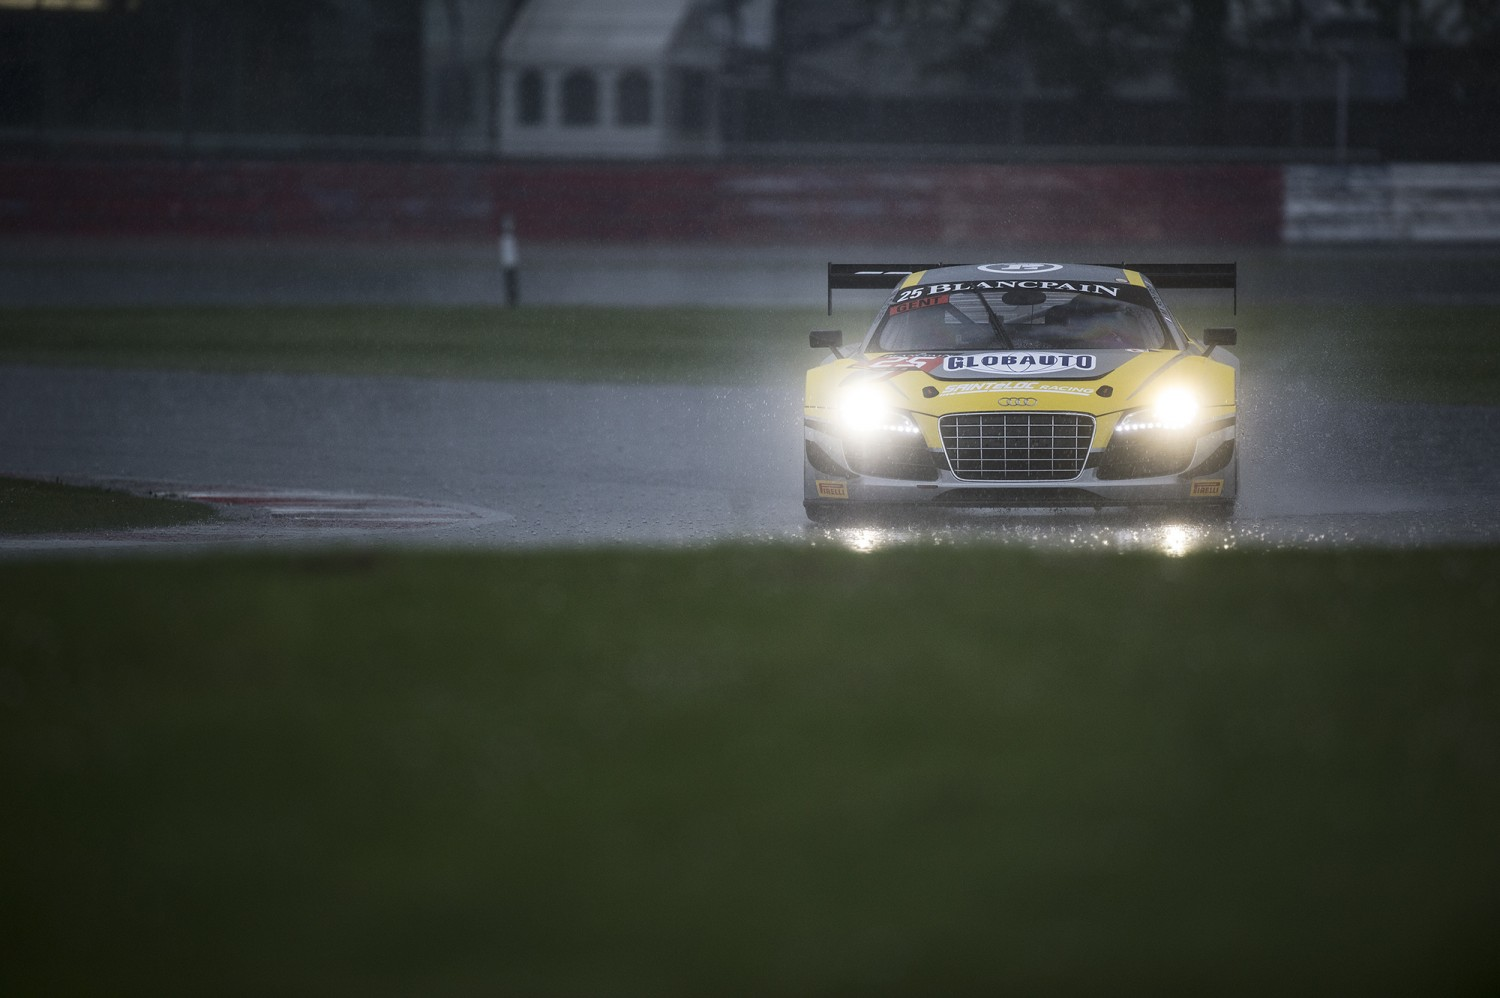 Not much action during very wet free practice